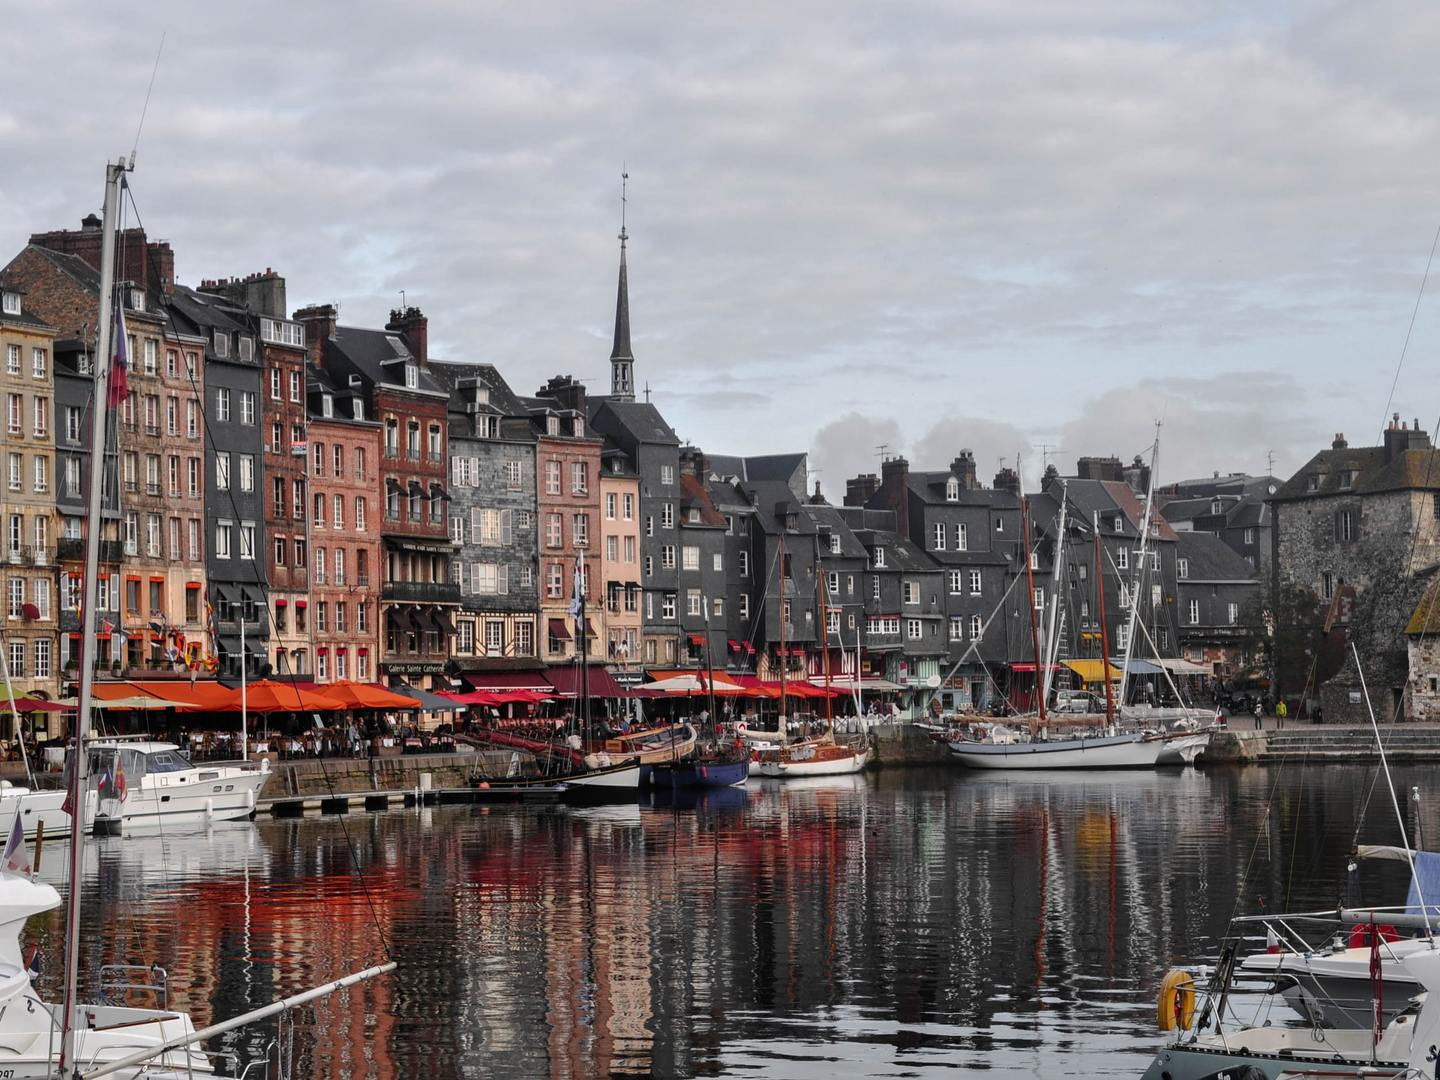 The harbour in Honfleur, France